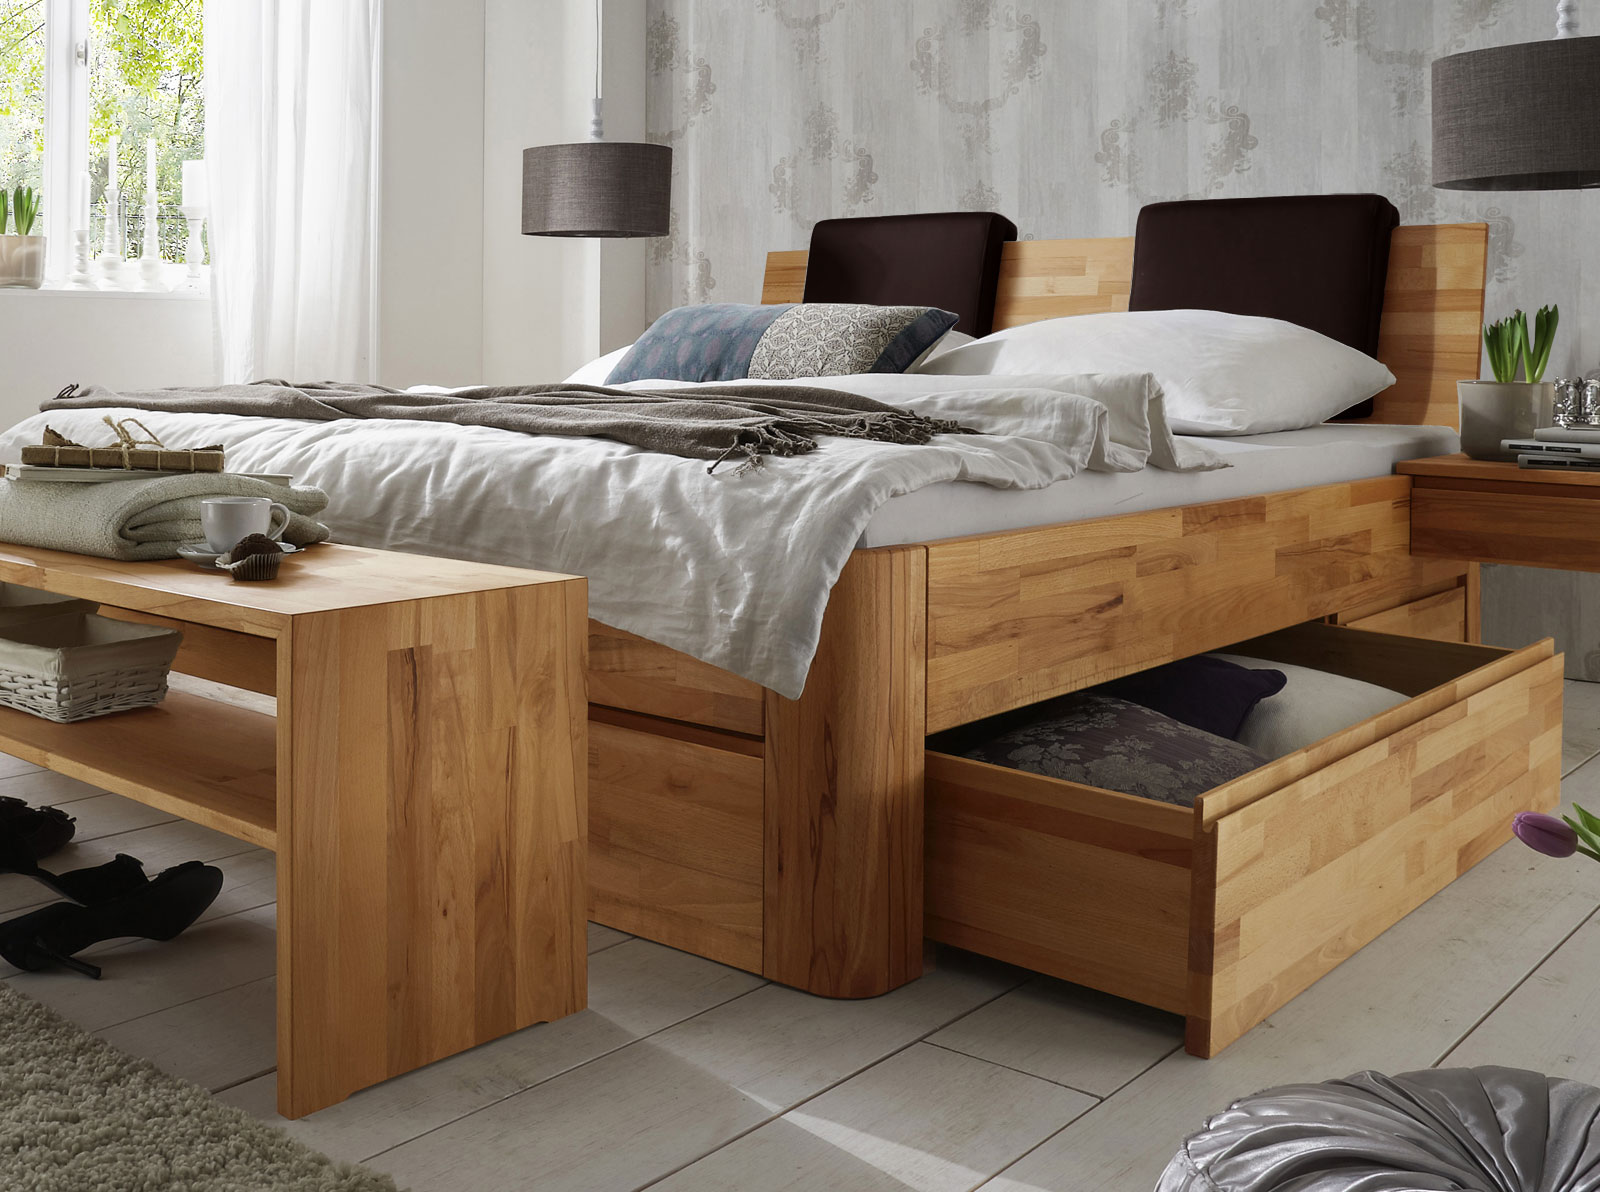 bett aus unbehandeltem holz. Black Bedroom Furniture Sets. Home Design Ideas